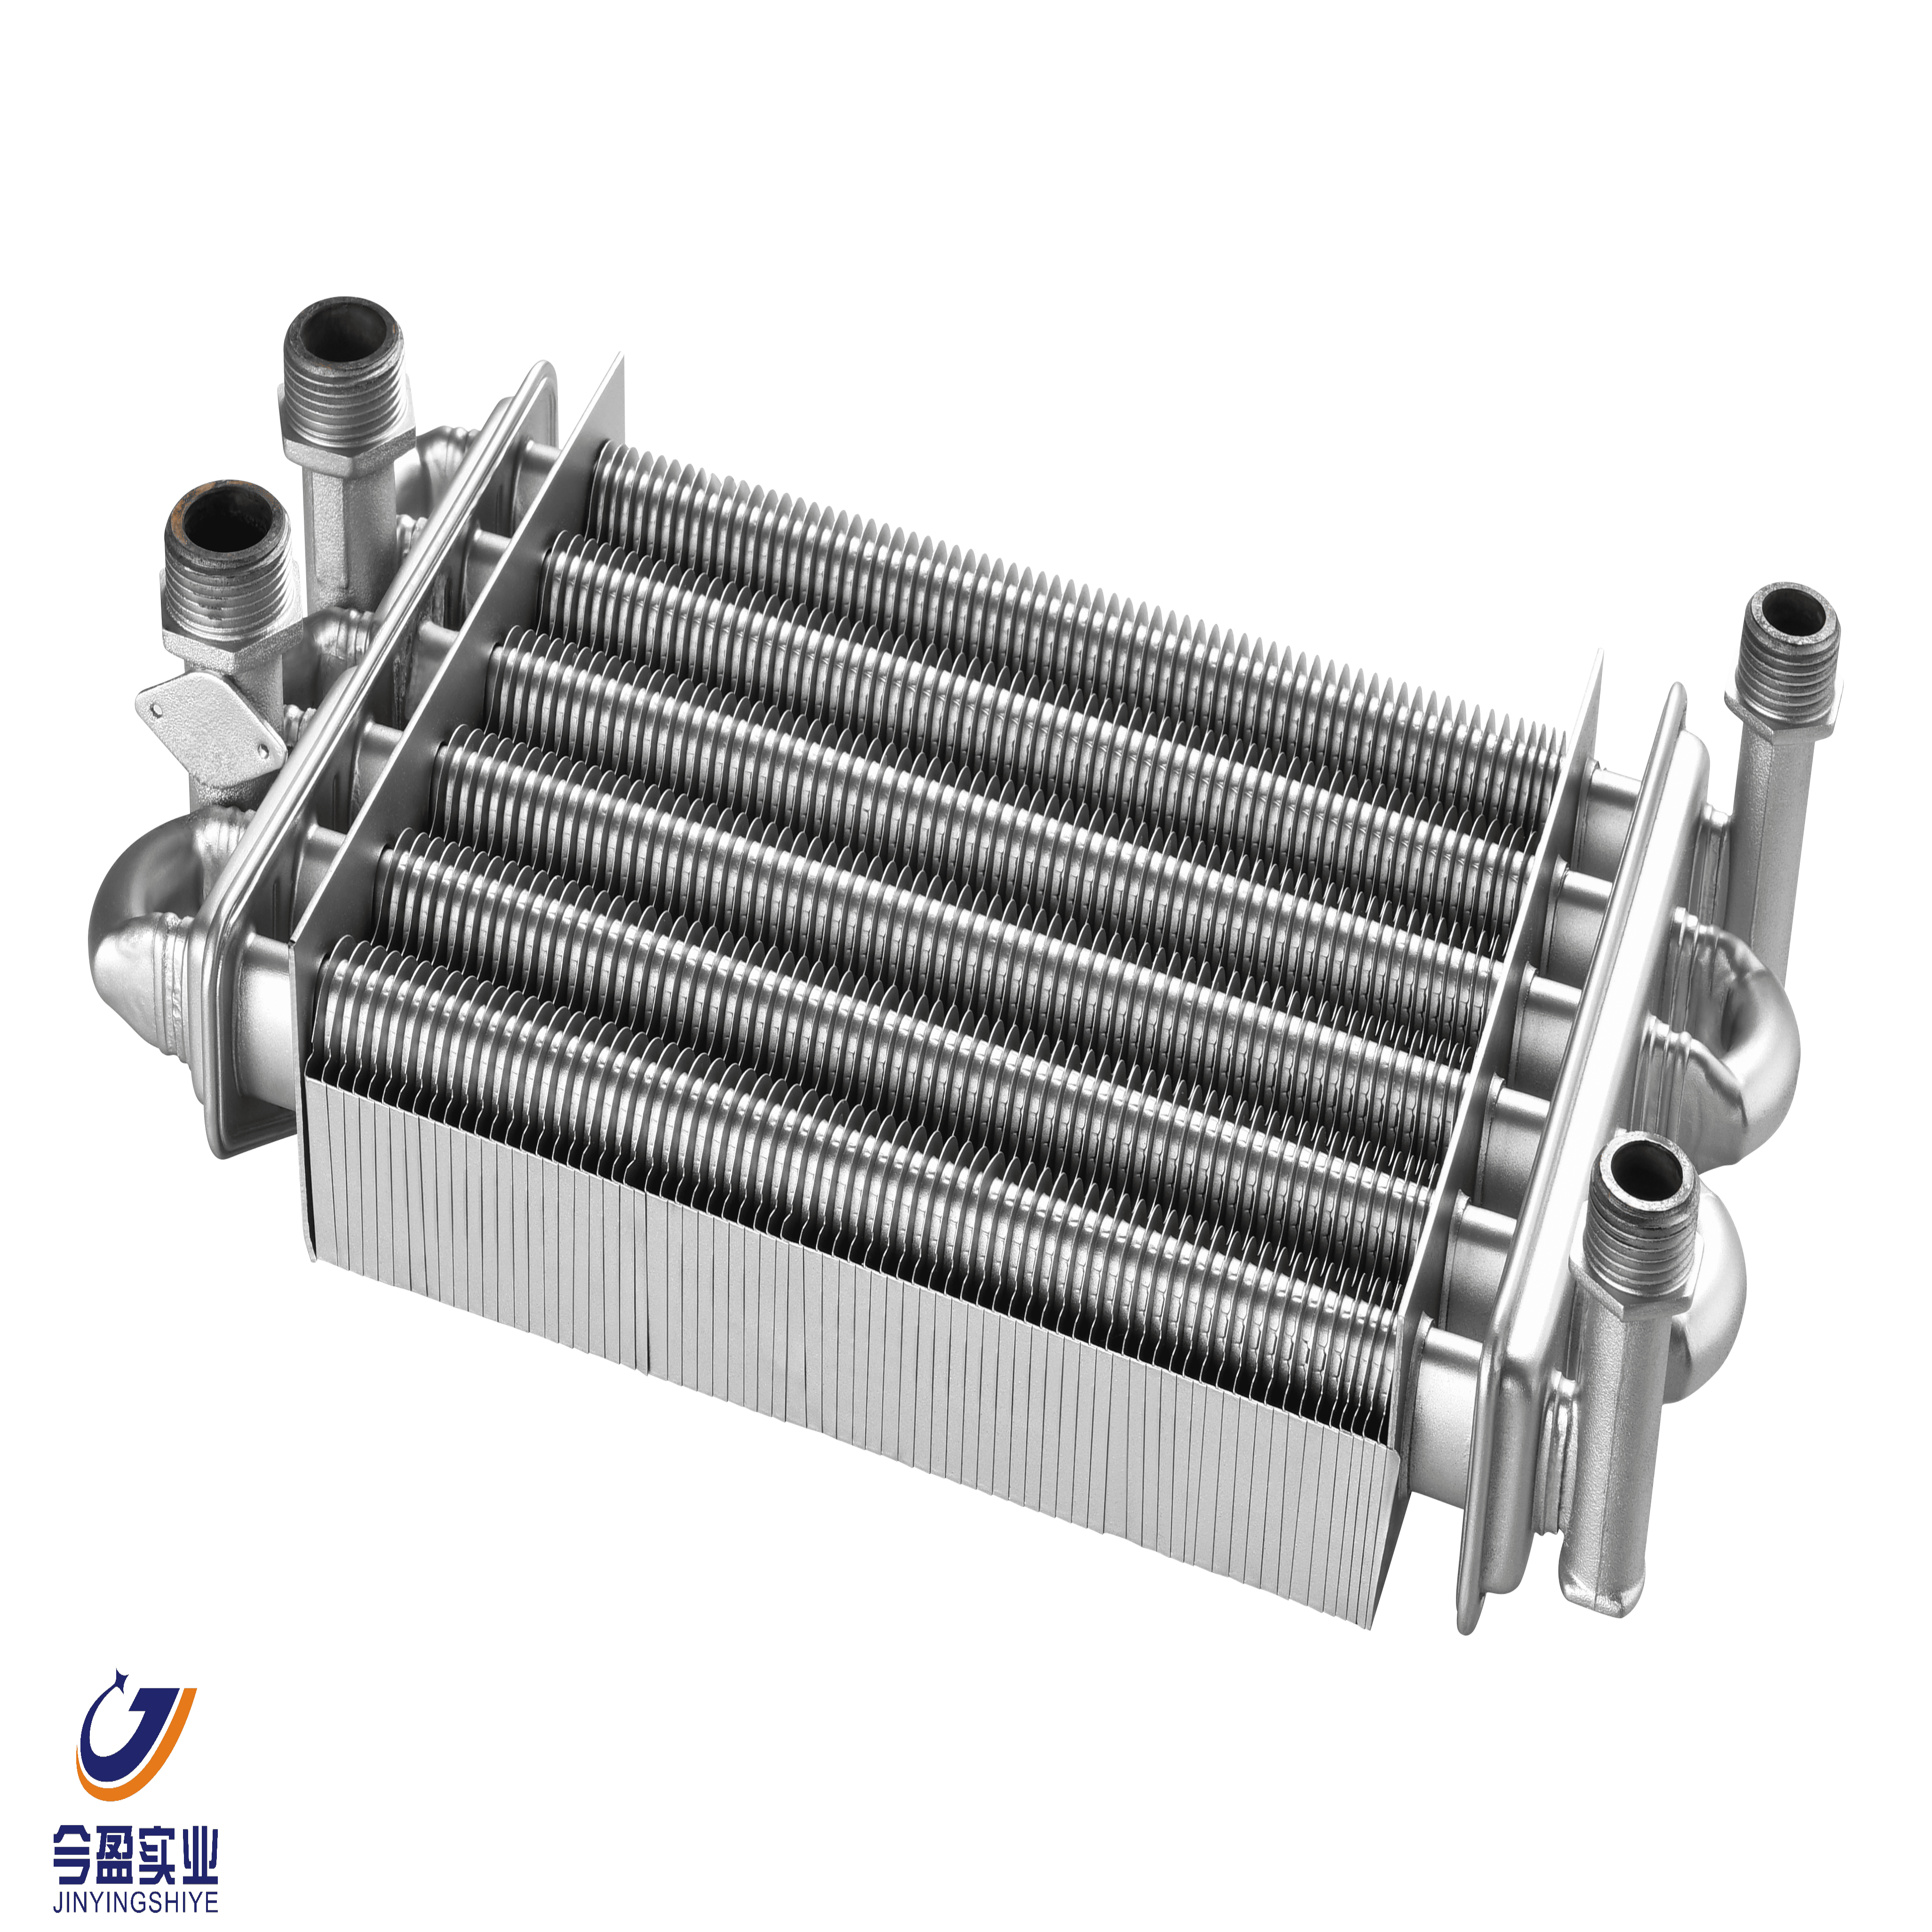 part of boiler, two tube of heat exchanger, wall hung boiler part,